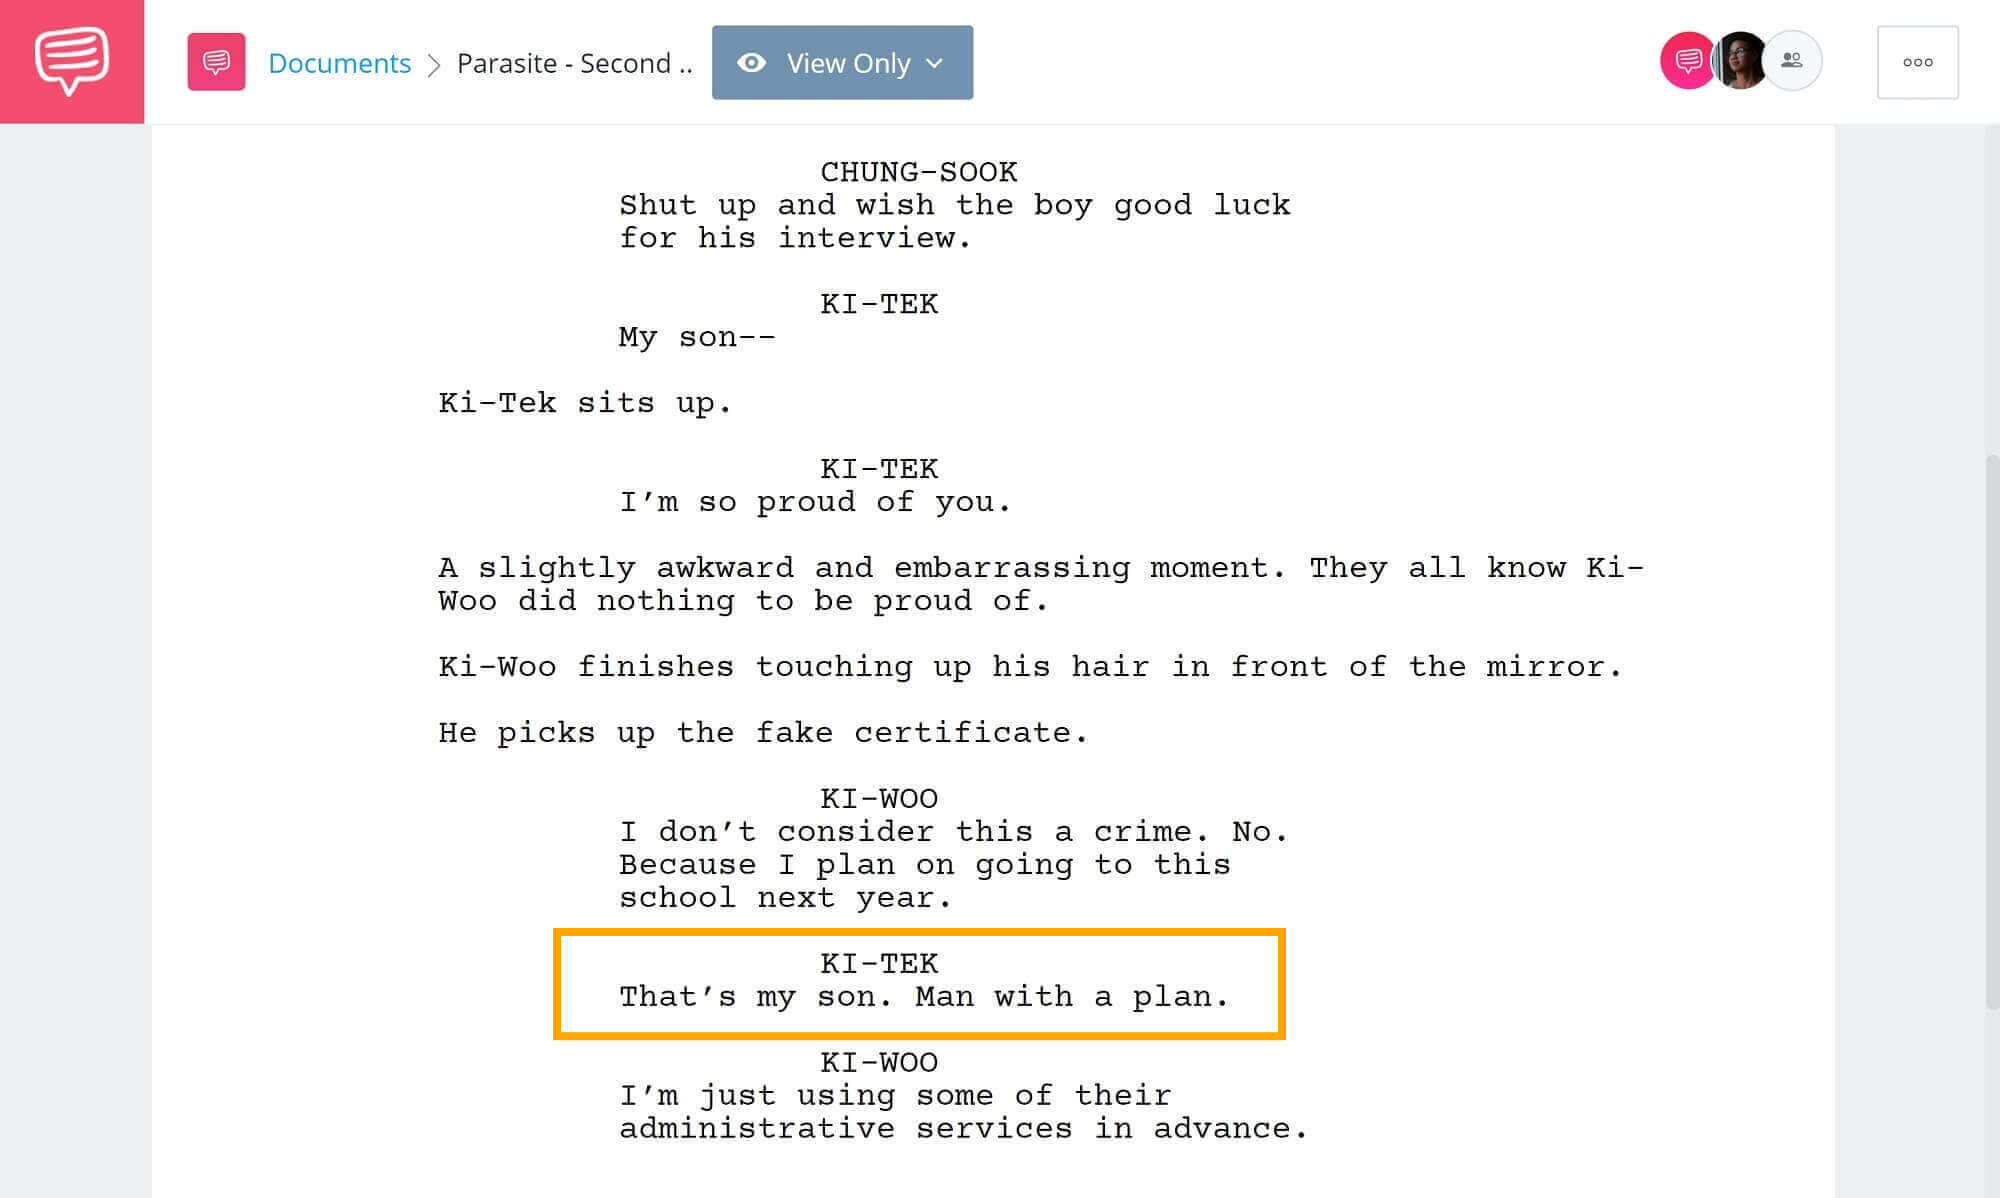 Foreshadowing-Example-From-Movies-and-Literature-Second-Foreshadowing-Example-from-Movie Parasite StudioBinder-Screenwriting-Software